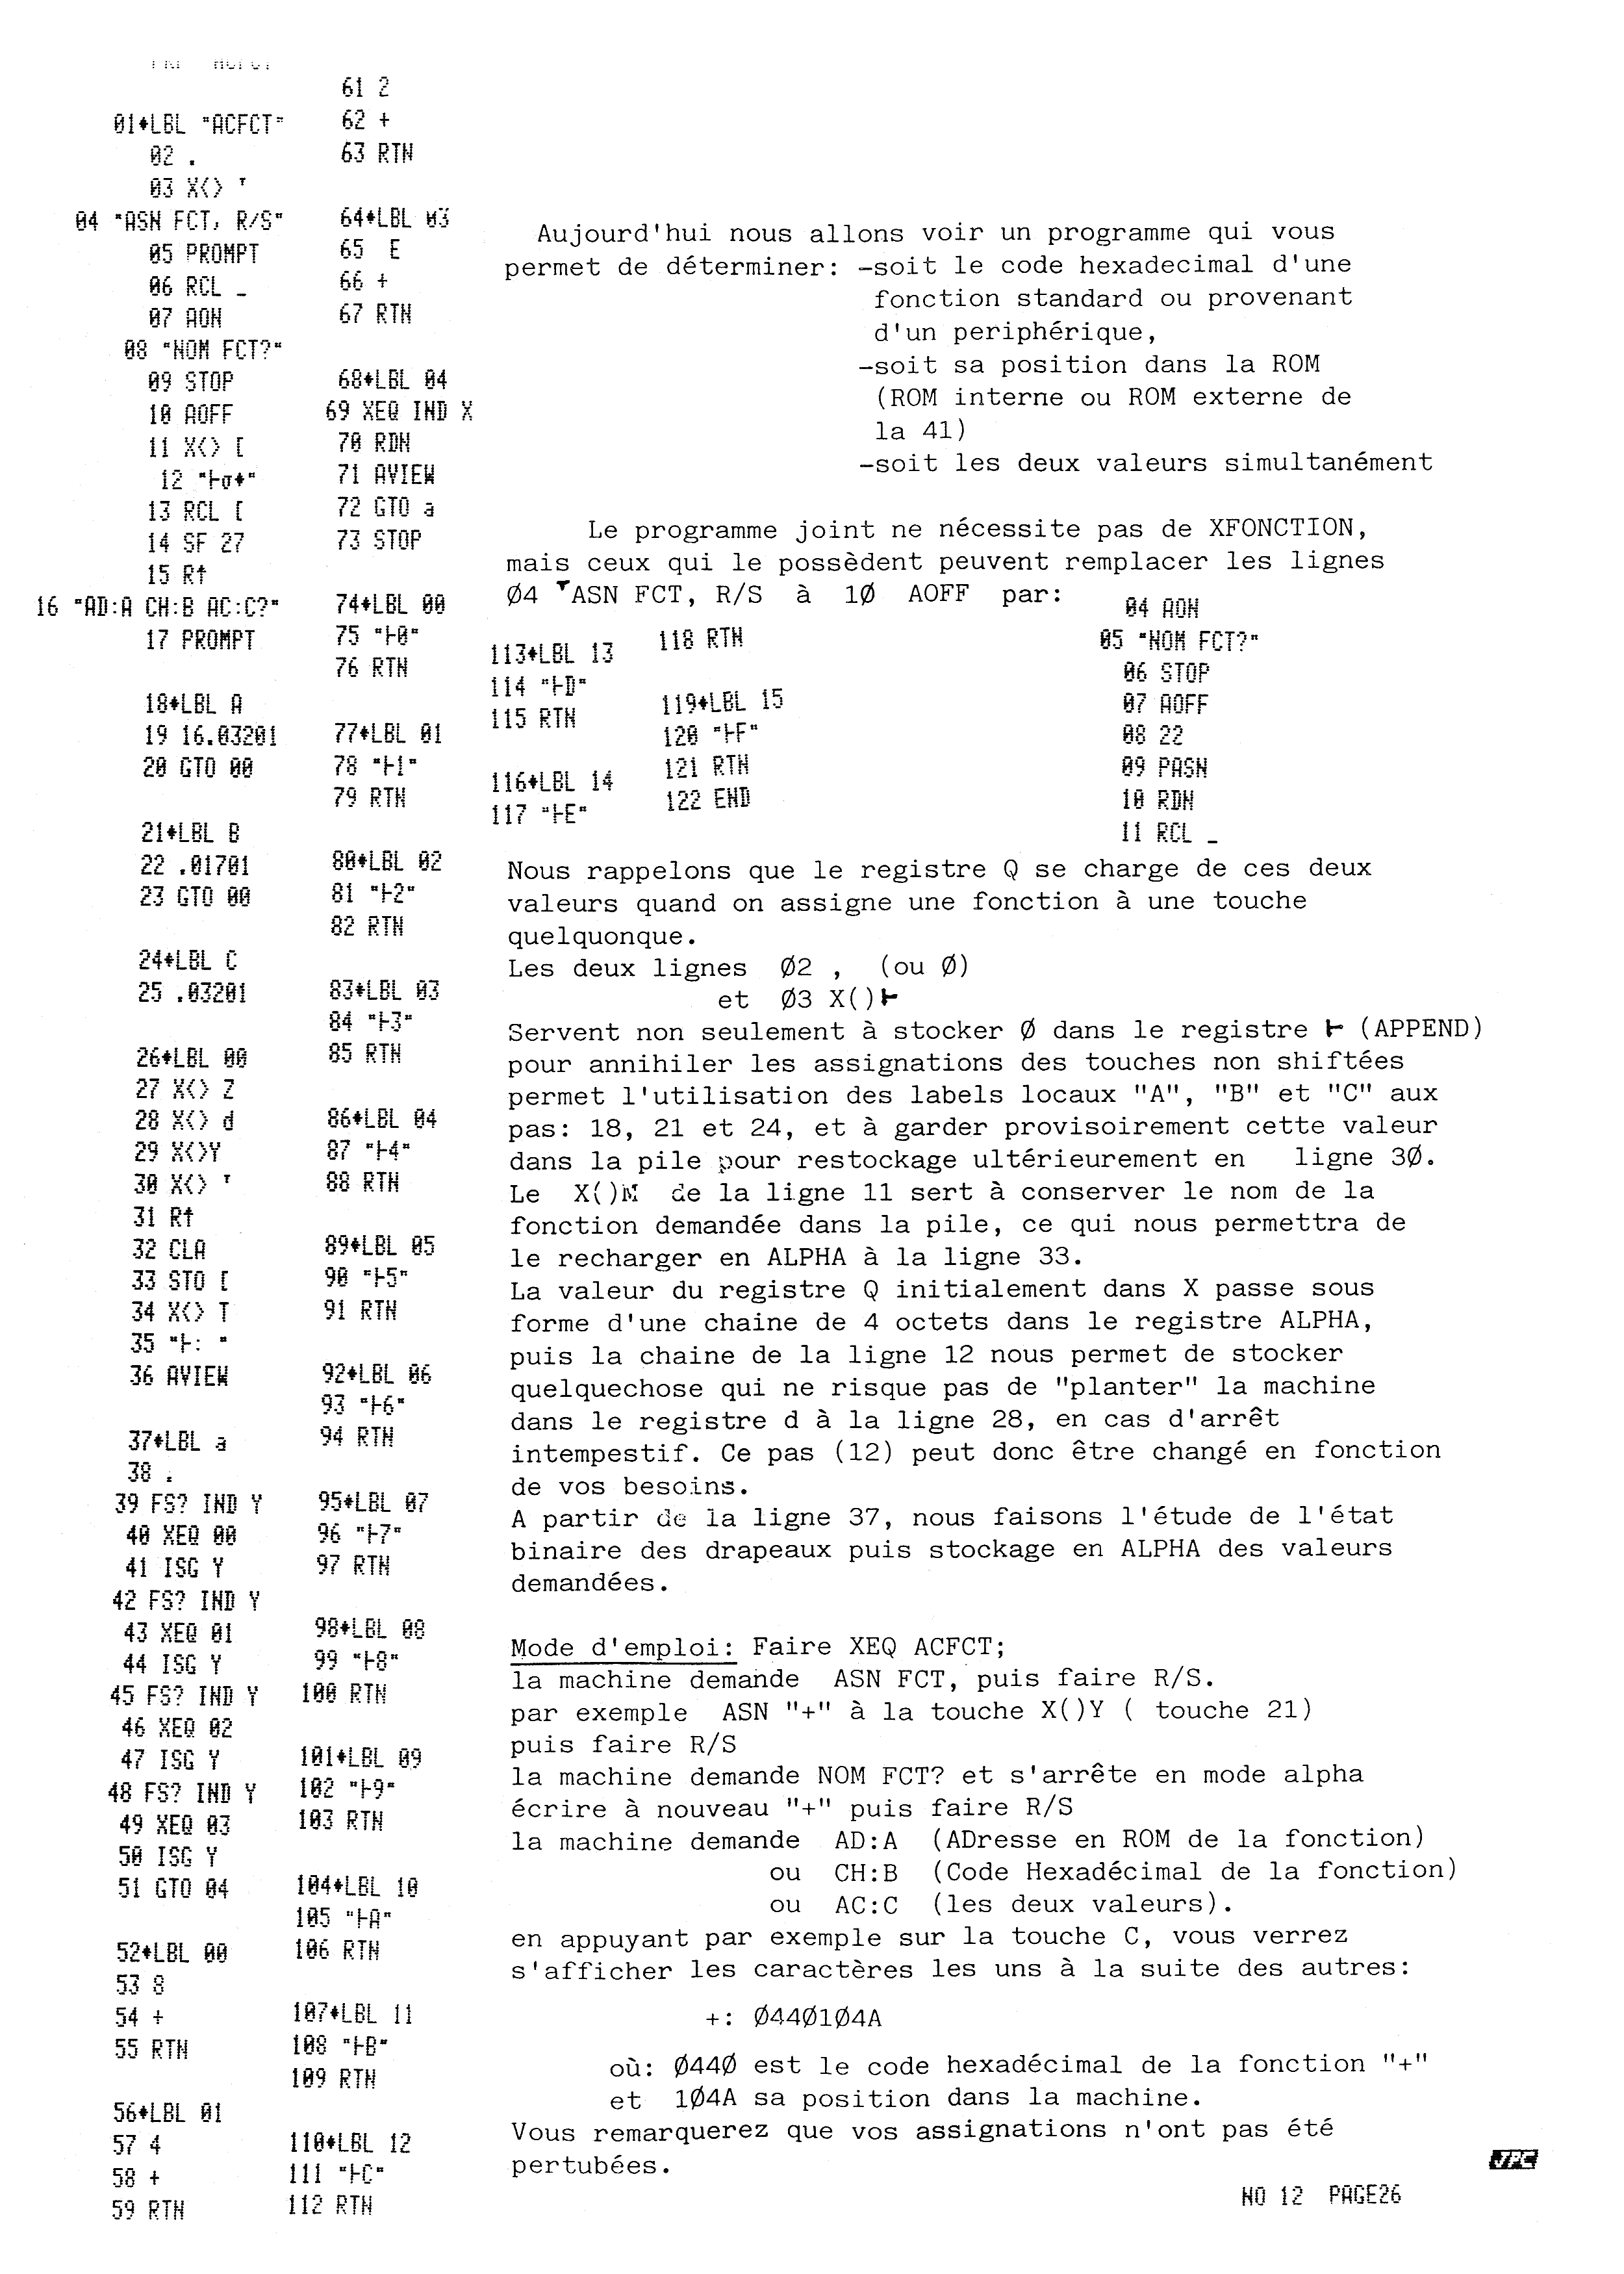 Jp-12-page-26-1000